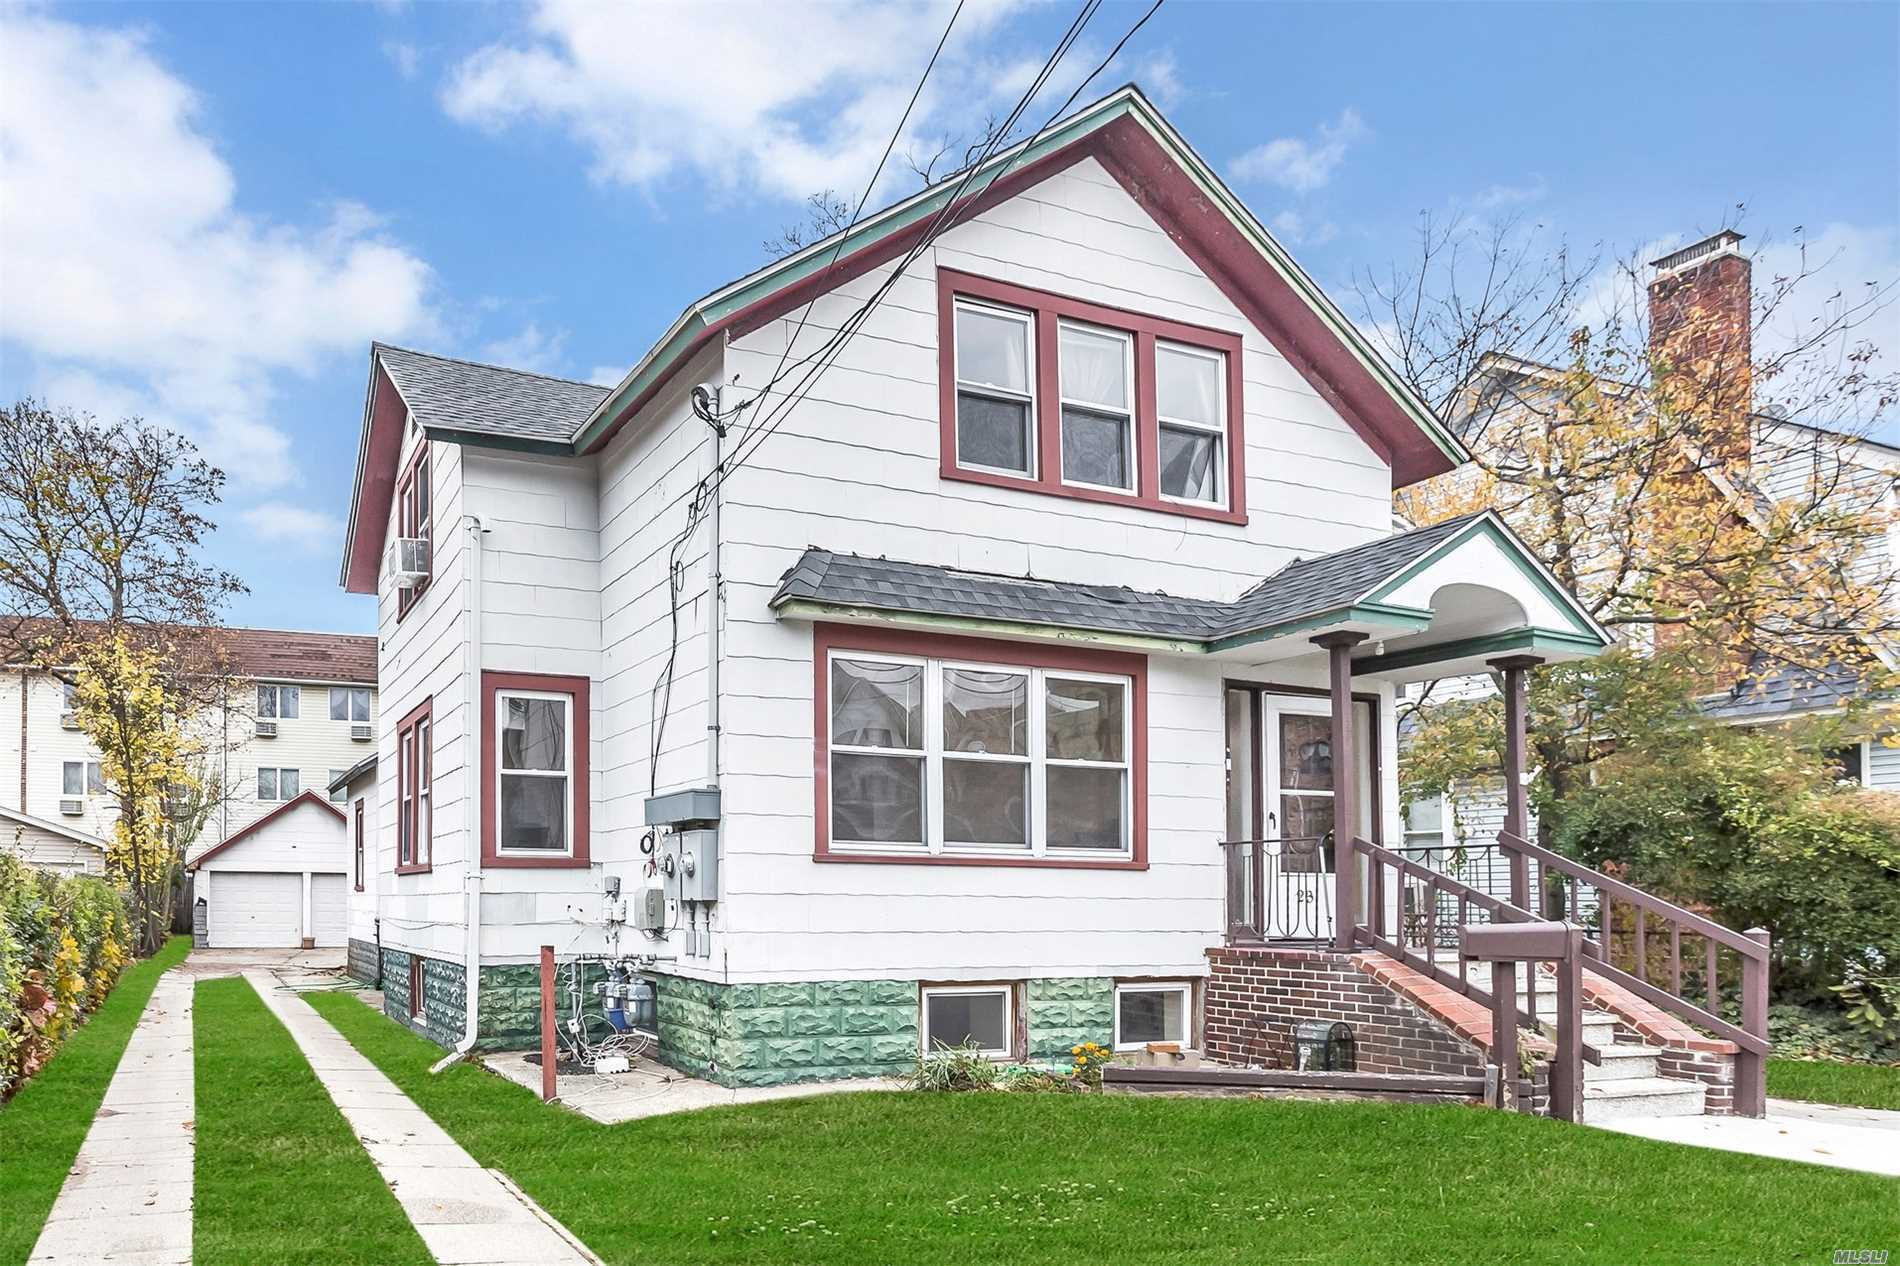 Legal Two Family Offering 3 Bedrooms Each Floor With Oversized Property And A 2 Car Garage, Two Boilers, Separate Electric Meters, Washer And Dryer To Each Unit In Basement, Each Apartment Has Their Own Storage In Basement,  All Utilities Are Separate. Fireplace In Master Bedroom